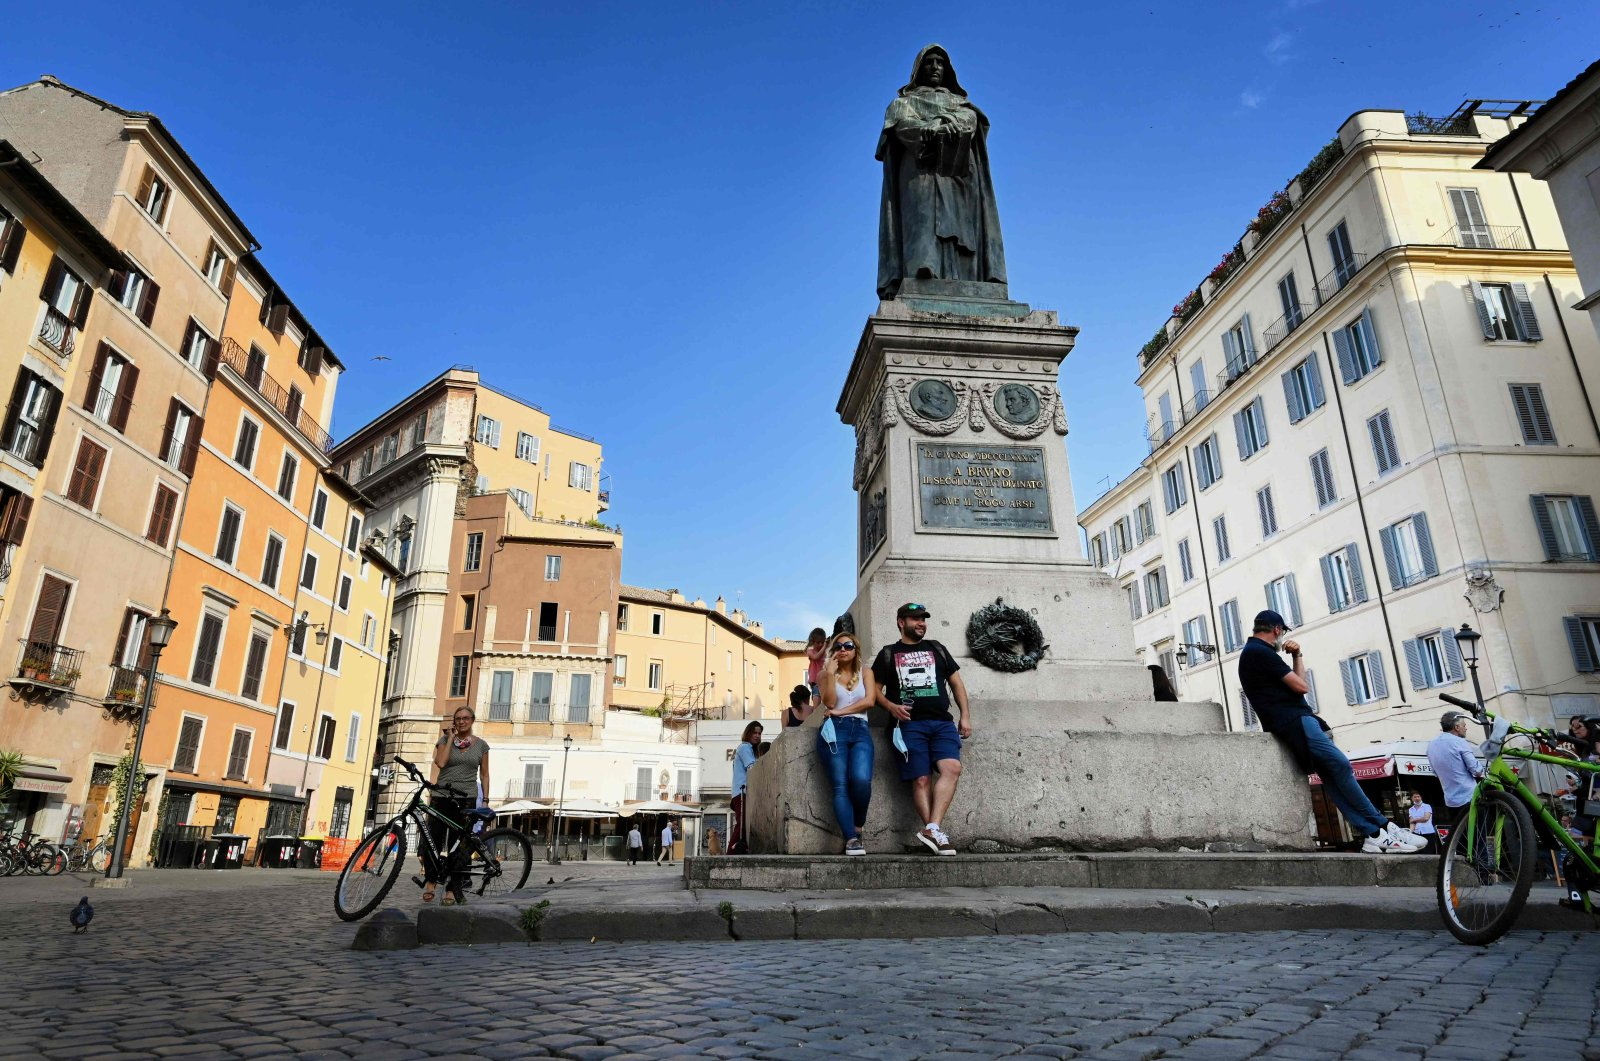 People relax on Campo dei Fiori in central Rome, on May 18, 2020 as the country's lockdown is easing after over two months, aimed at curbing the spread of the COVID-19 infection, caused by the novel coronavirus. (AFP Photo)